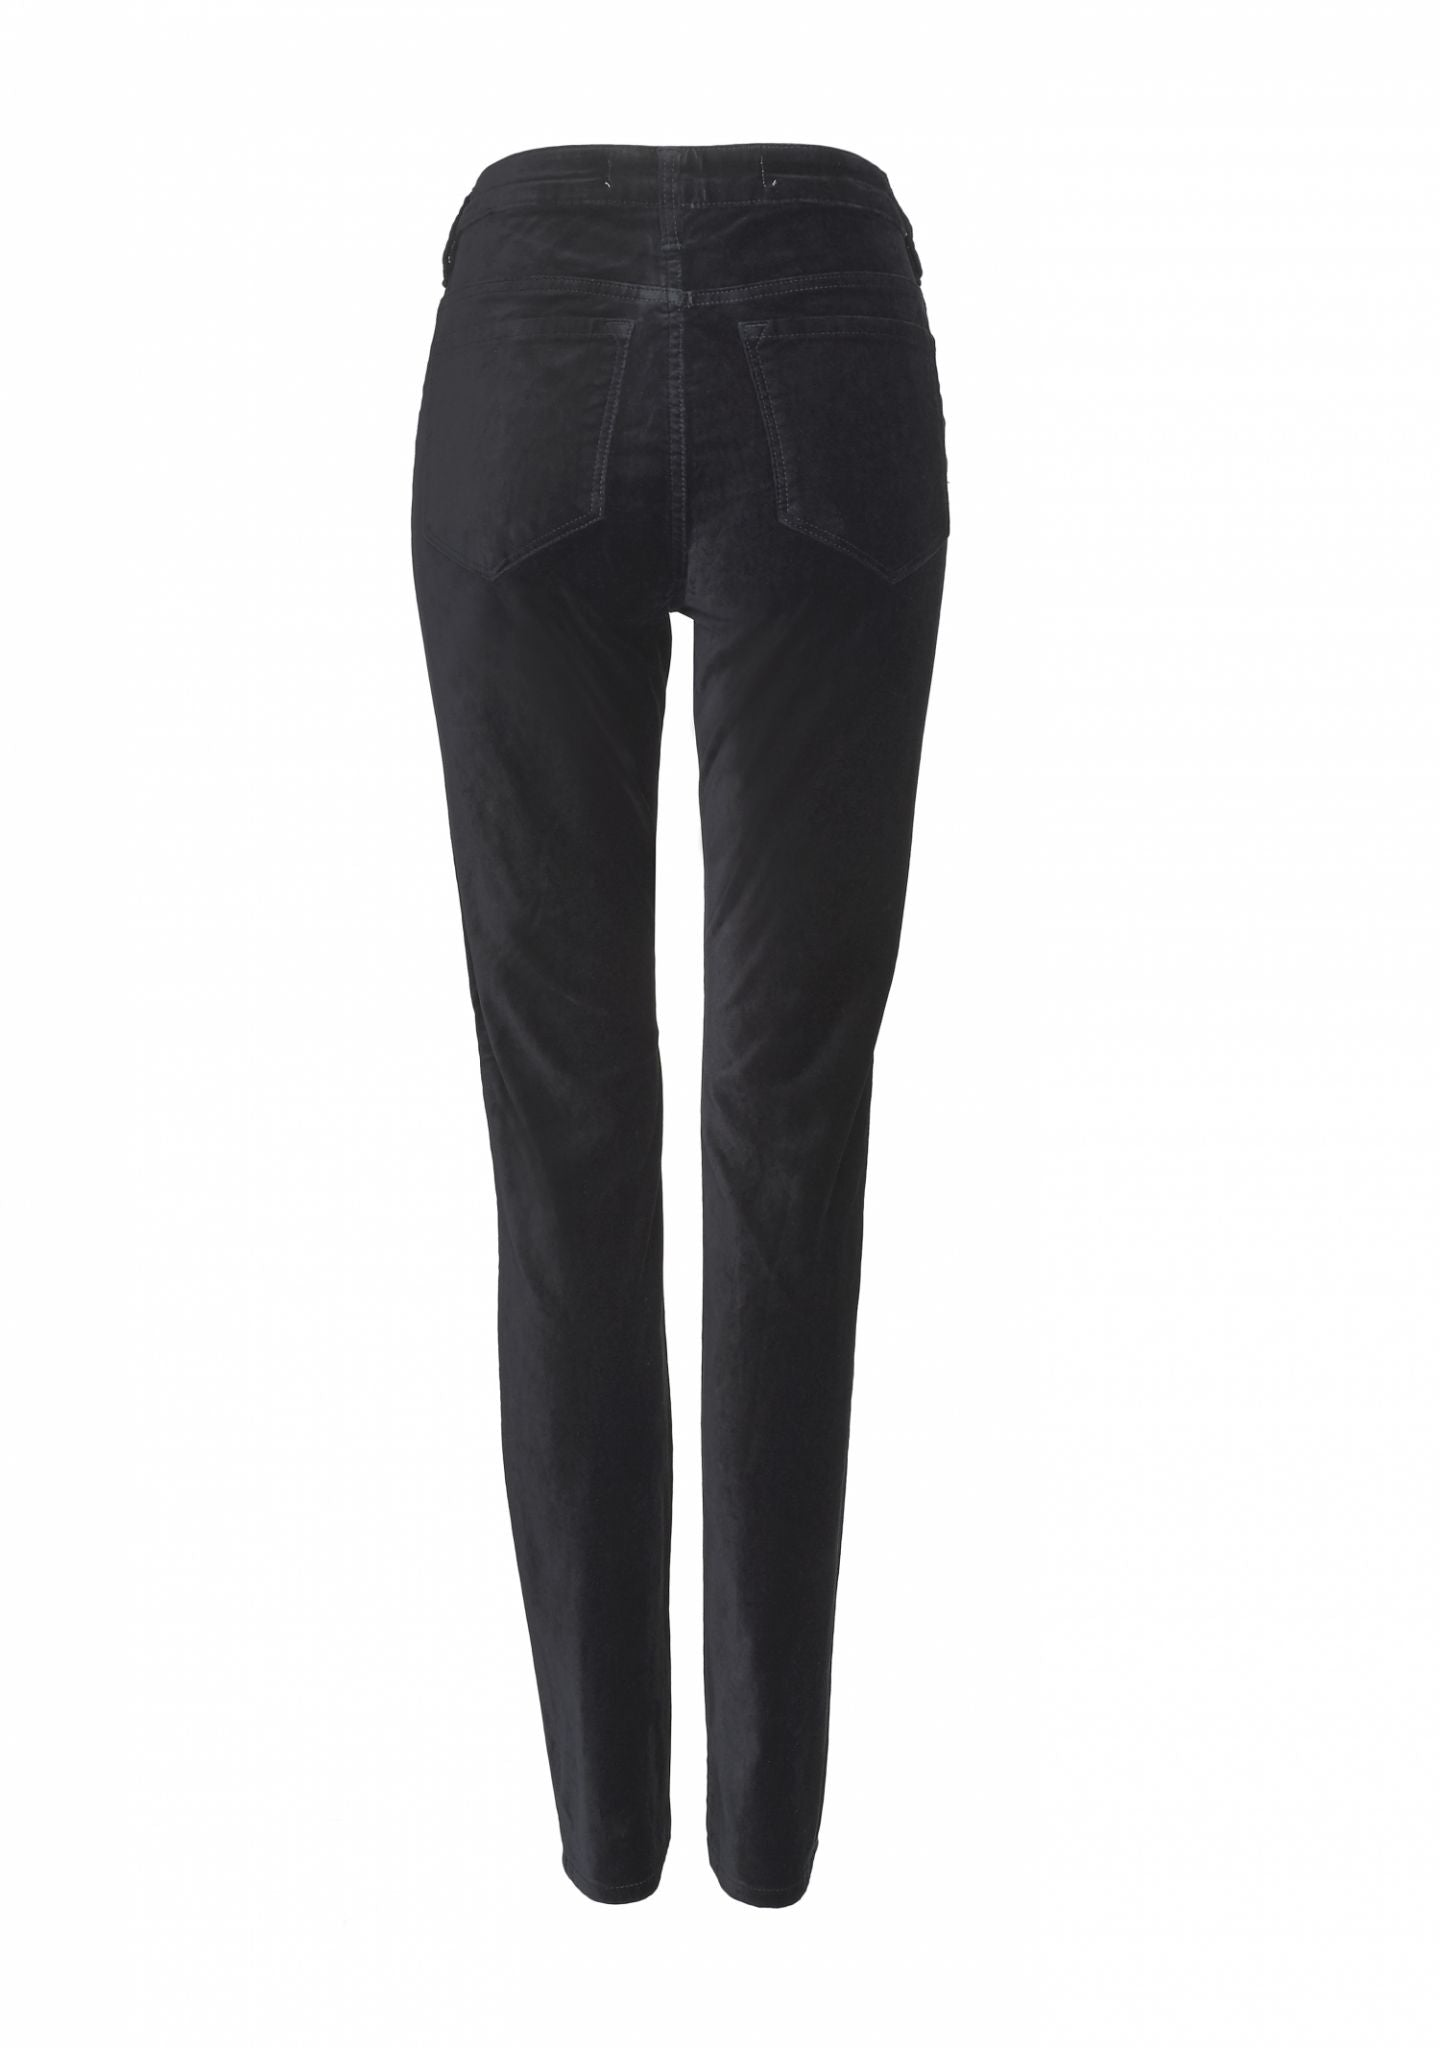 back of Maxine Elite Wizard Jeans cigarette cut, full rise in black velvet - perfect party jean